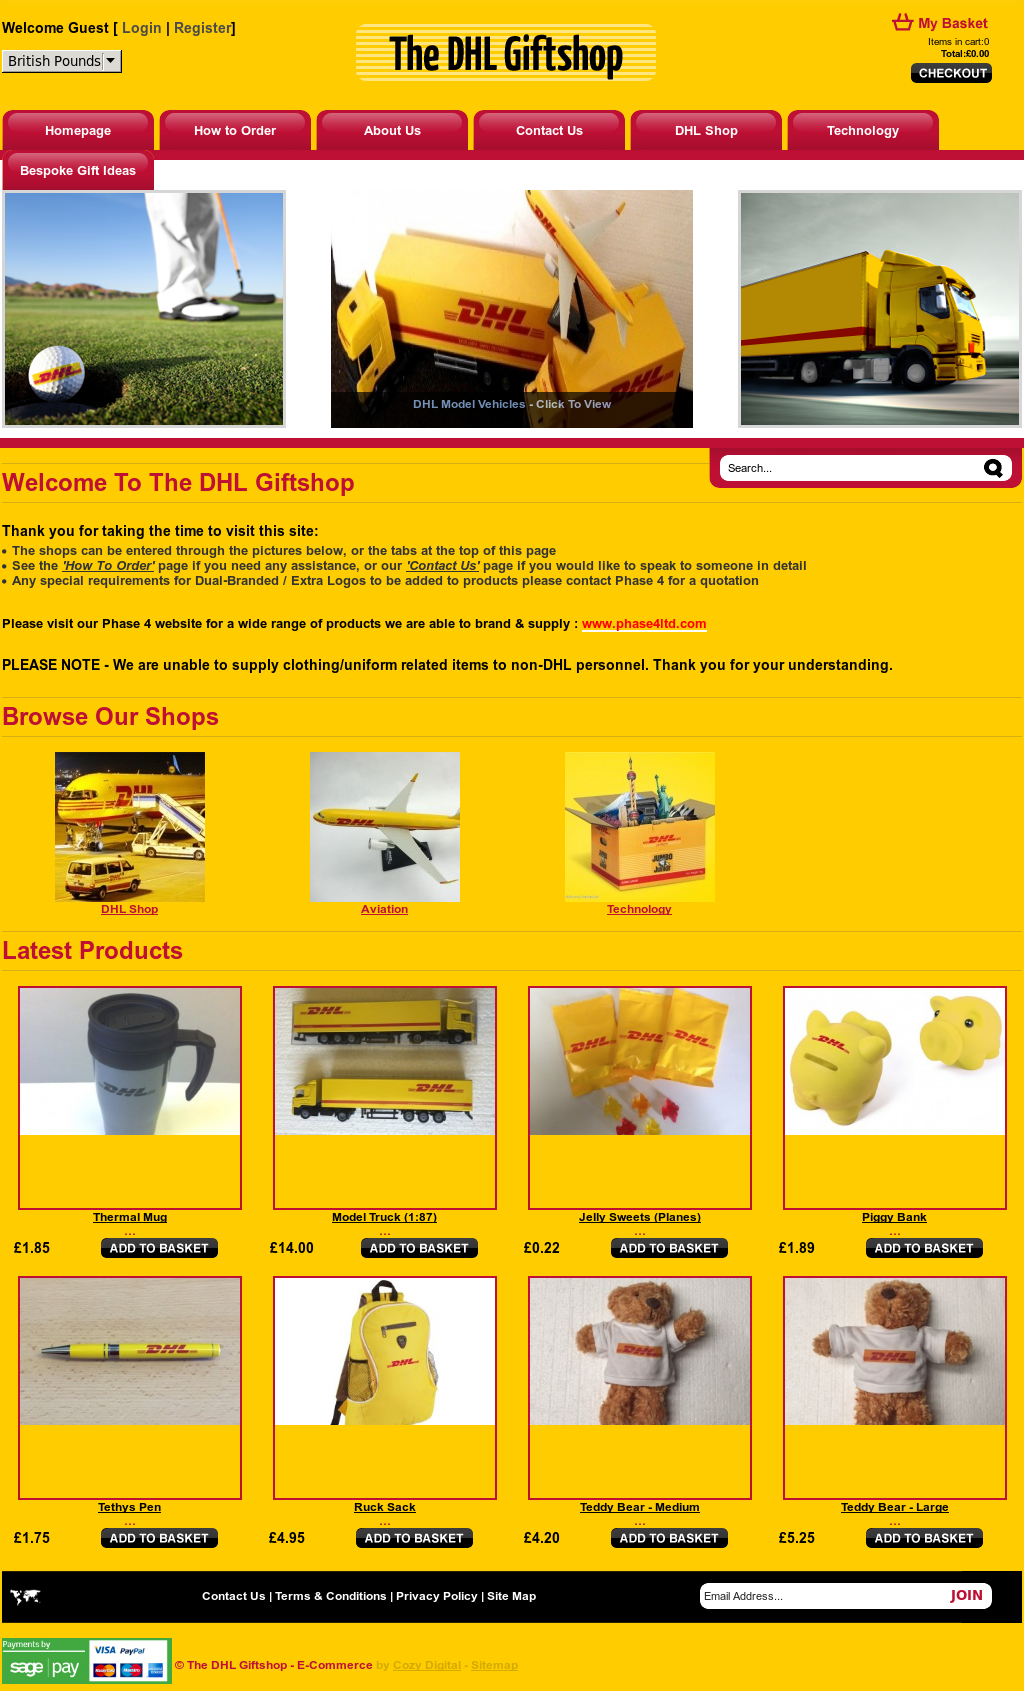 The Dhl Giftshop Competitors, Revenue and Employees - Owler Company